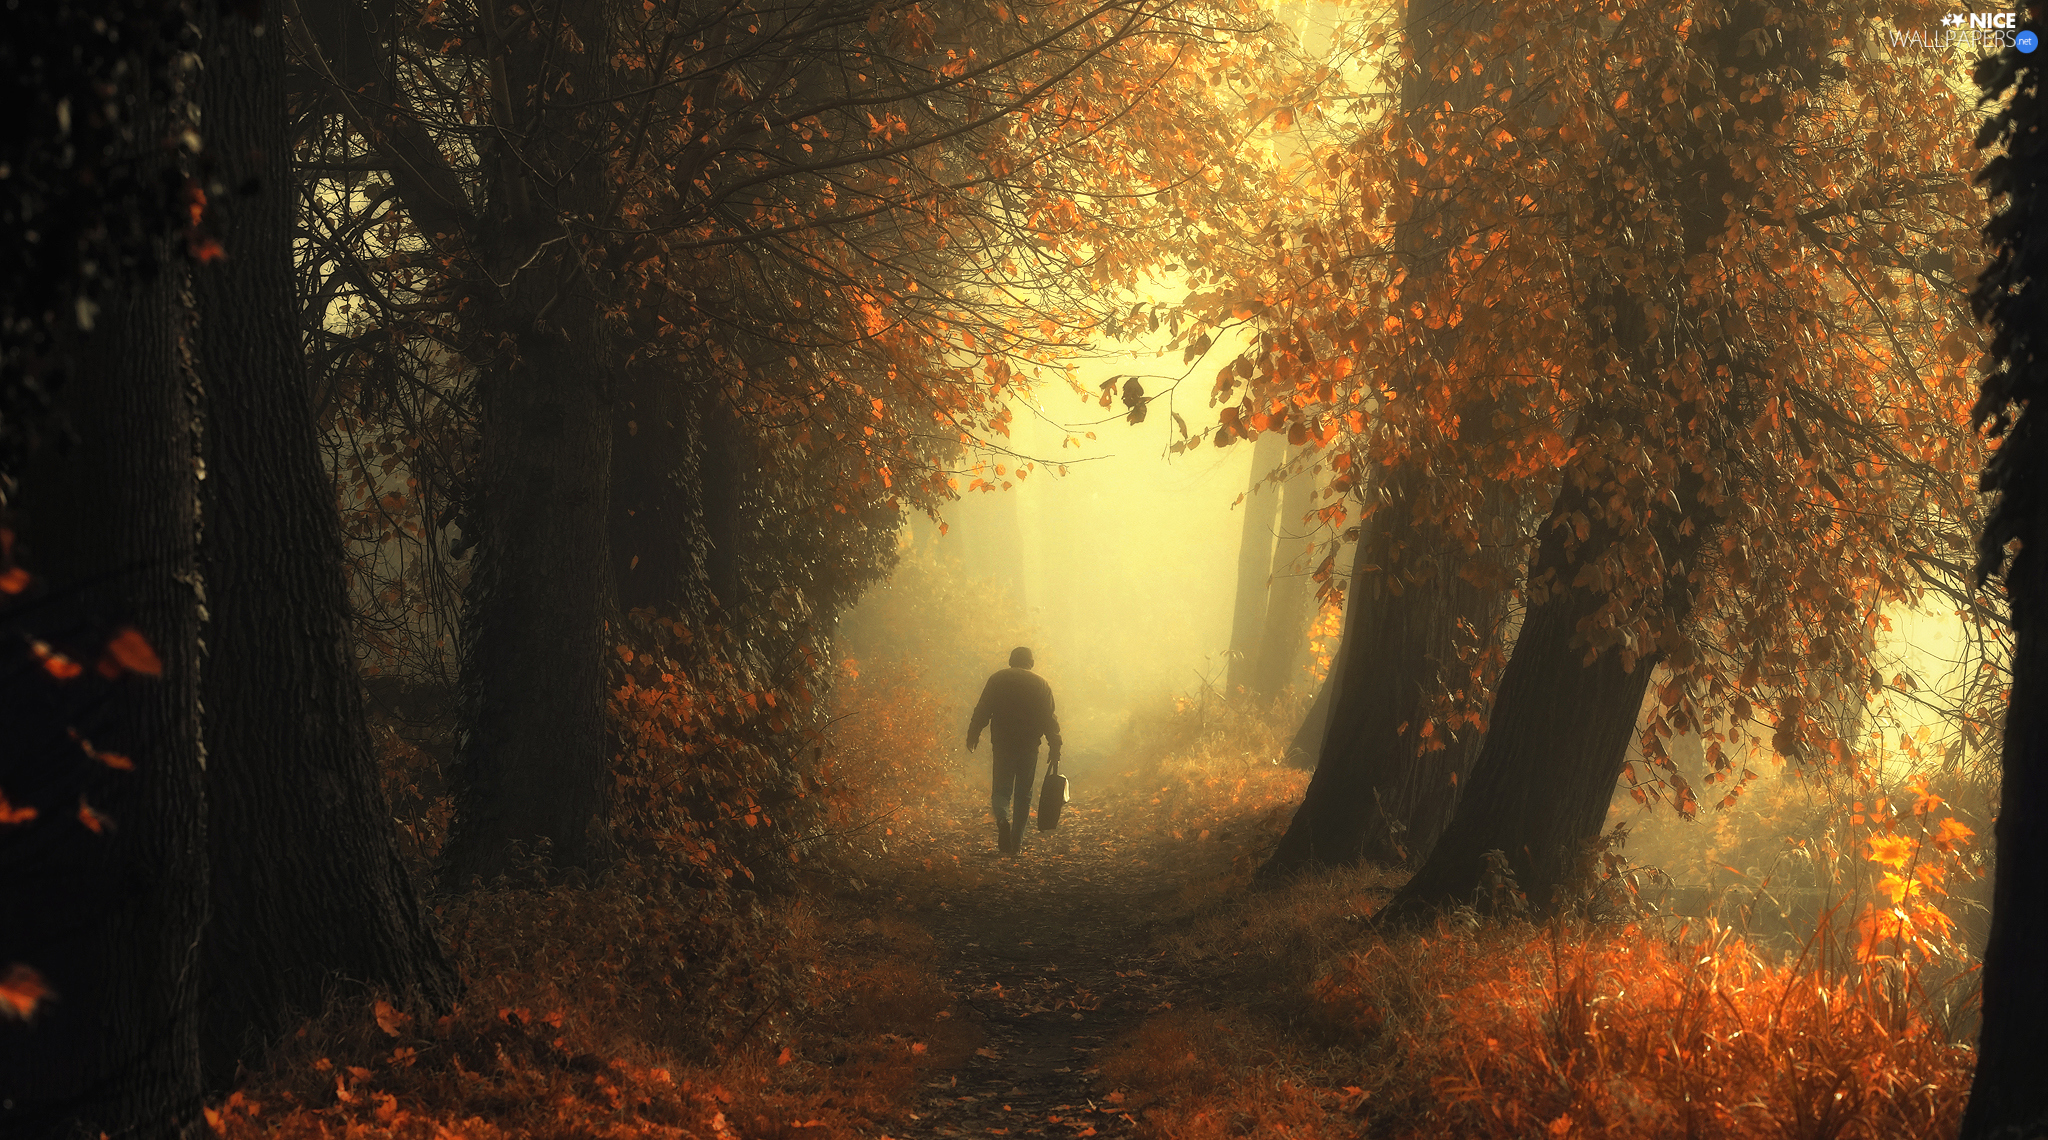 viewes, forest, Fog, trees, autumn, Way, Human